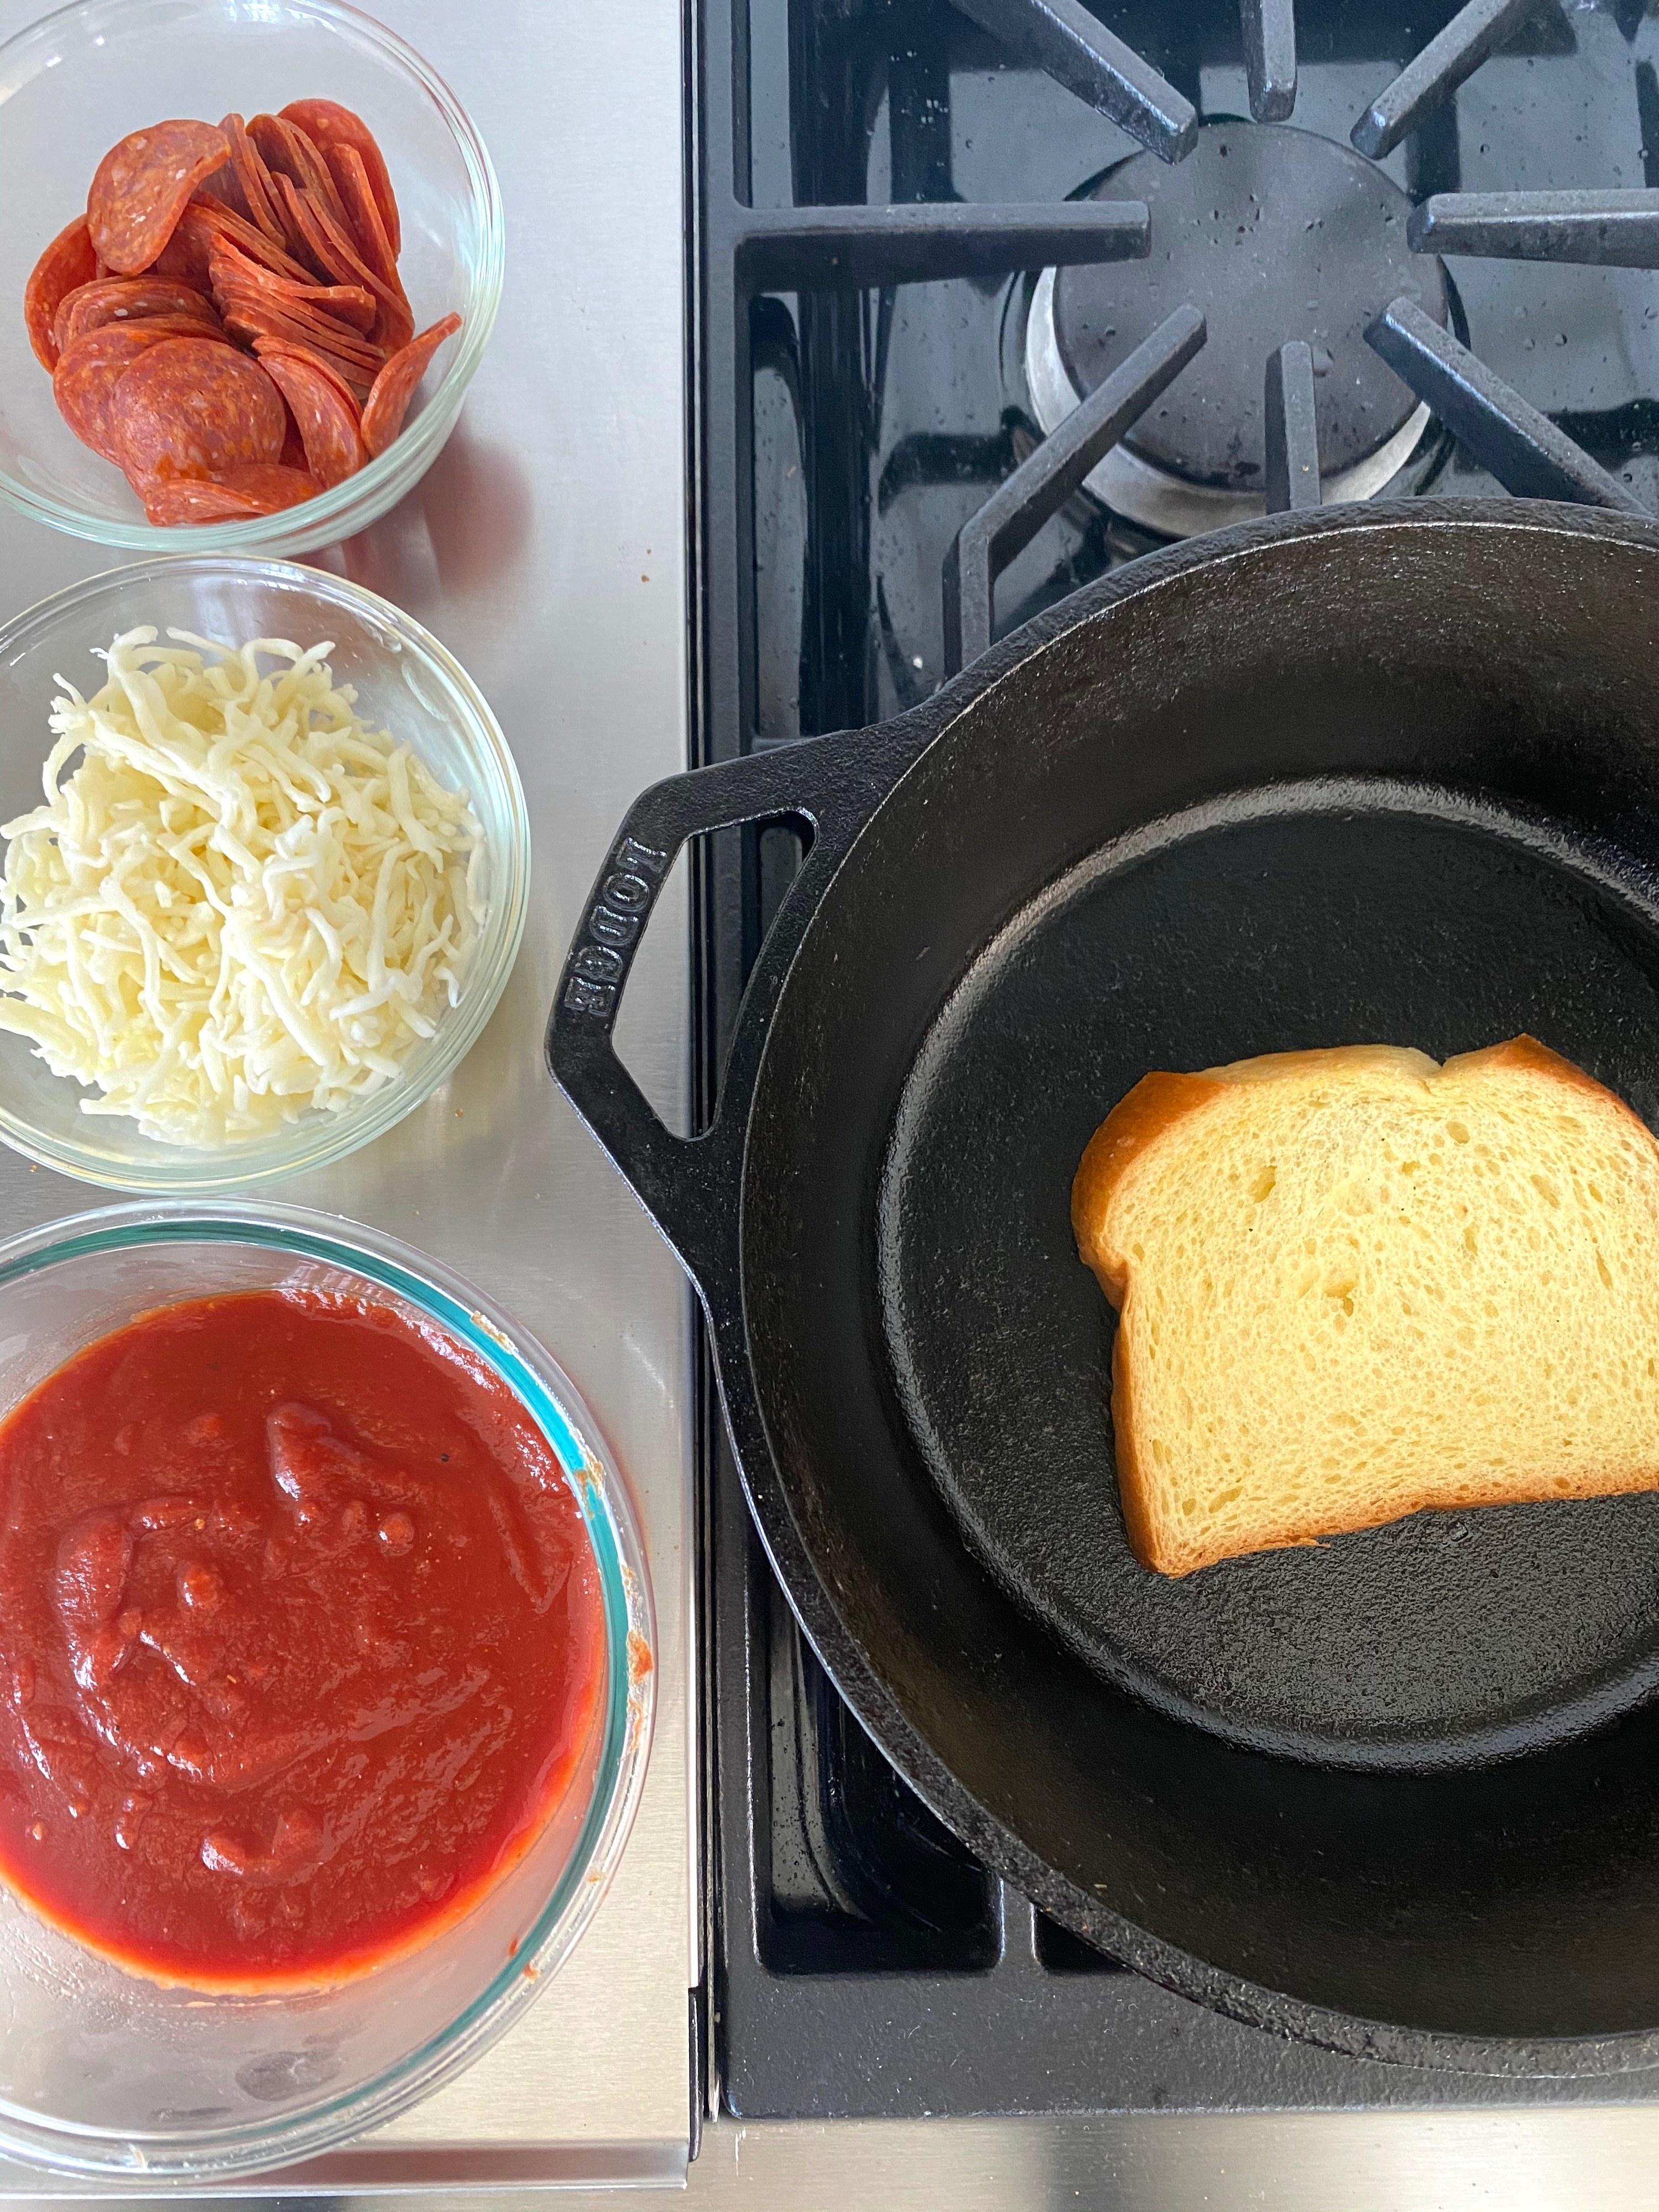 Tomato sauce, cheese, and pepperoni in small bowls next to a cast iron skillet with bread toasting inside.